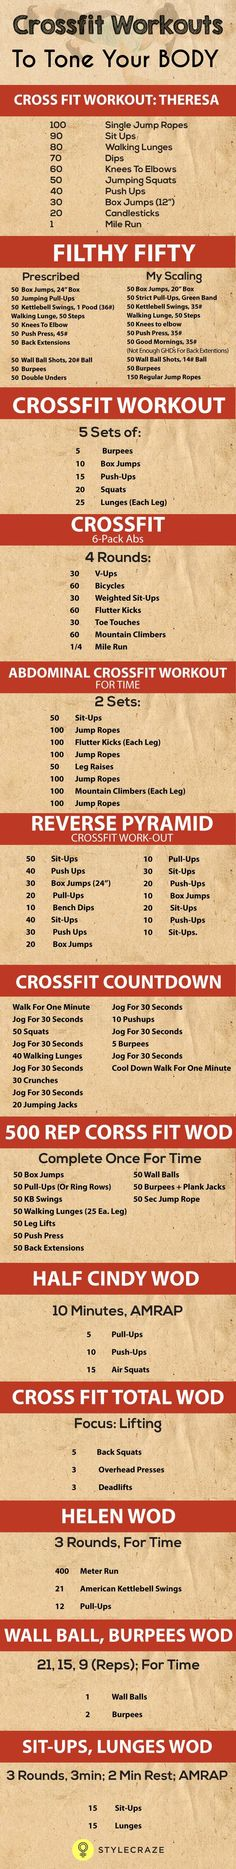 20 Effective Crossfit Workouts to Strengthen Your Body weight lossucess . 20 Effective Crossfit Workouts to Strengthen Your Body weight lossucess . Toning Workouts, Fitness Workouts, At Home Workouts, Fitness Motivation, Fitness Goals, Motivation Quotes, Fitness Plan, Circuit Workouts, Fitness Tracker